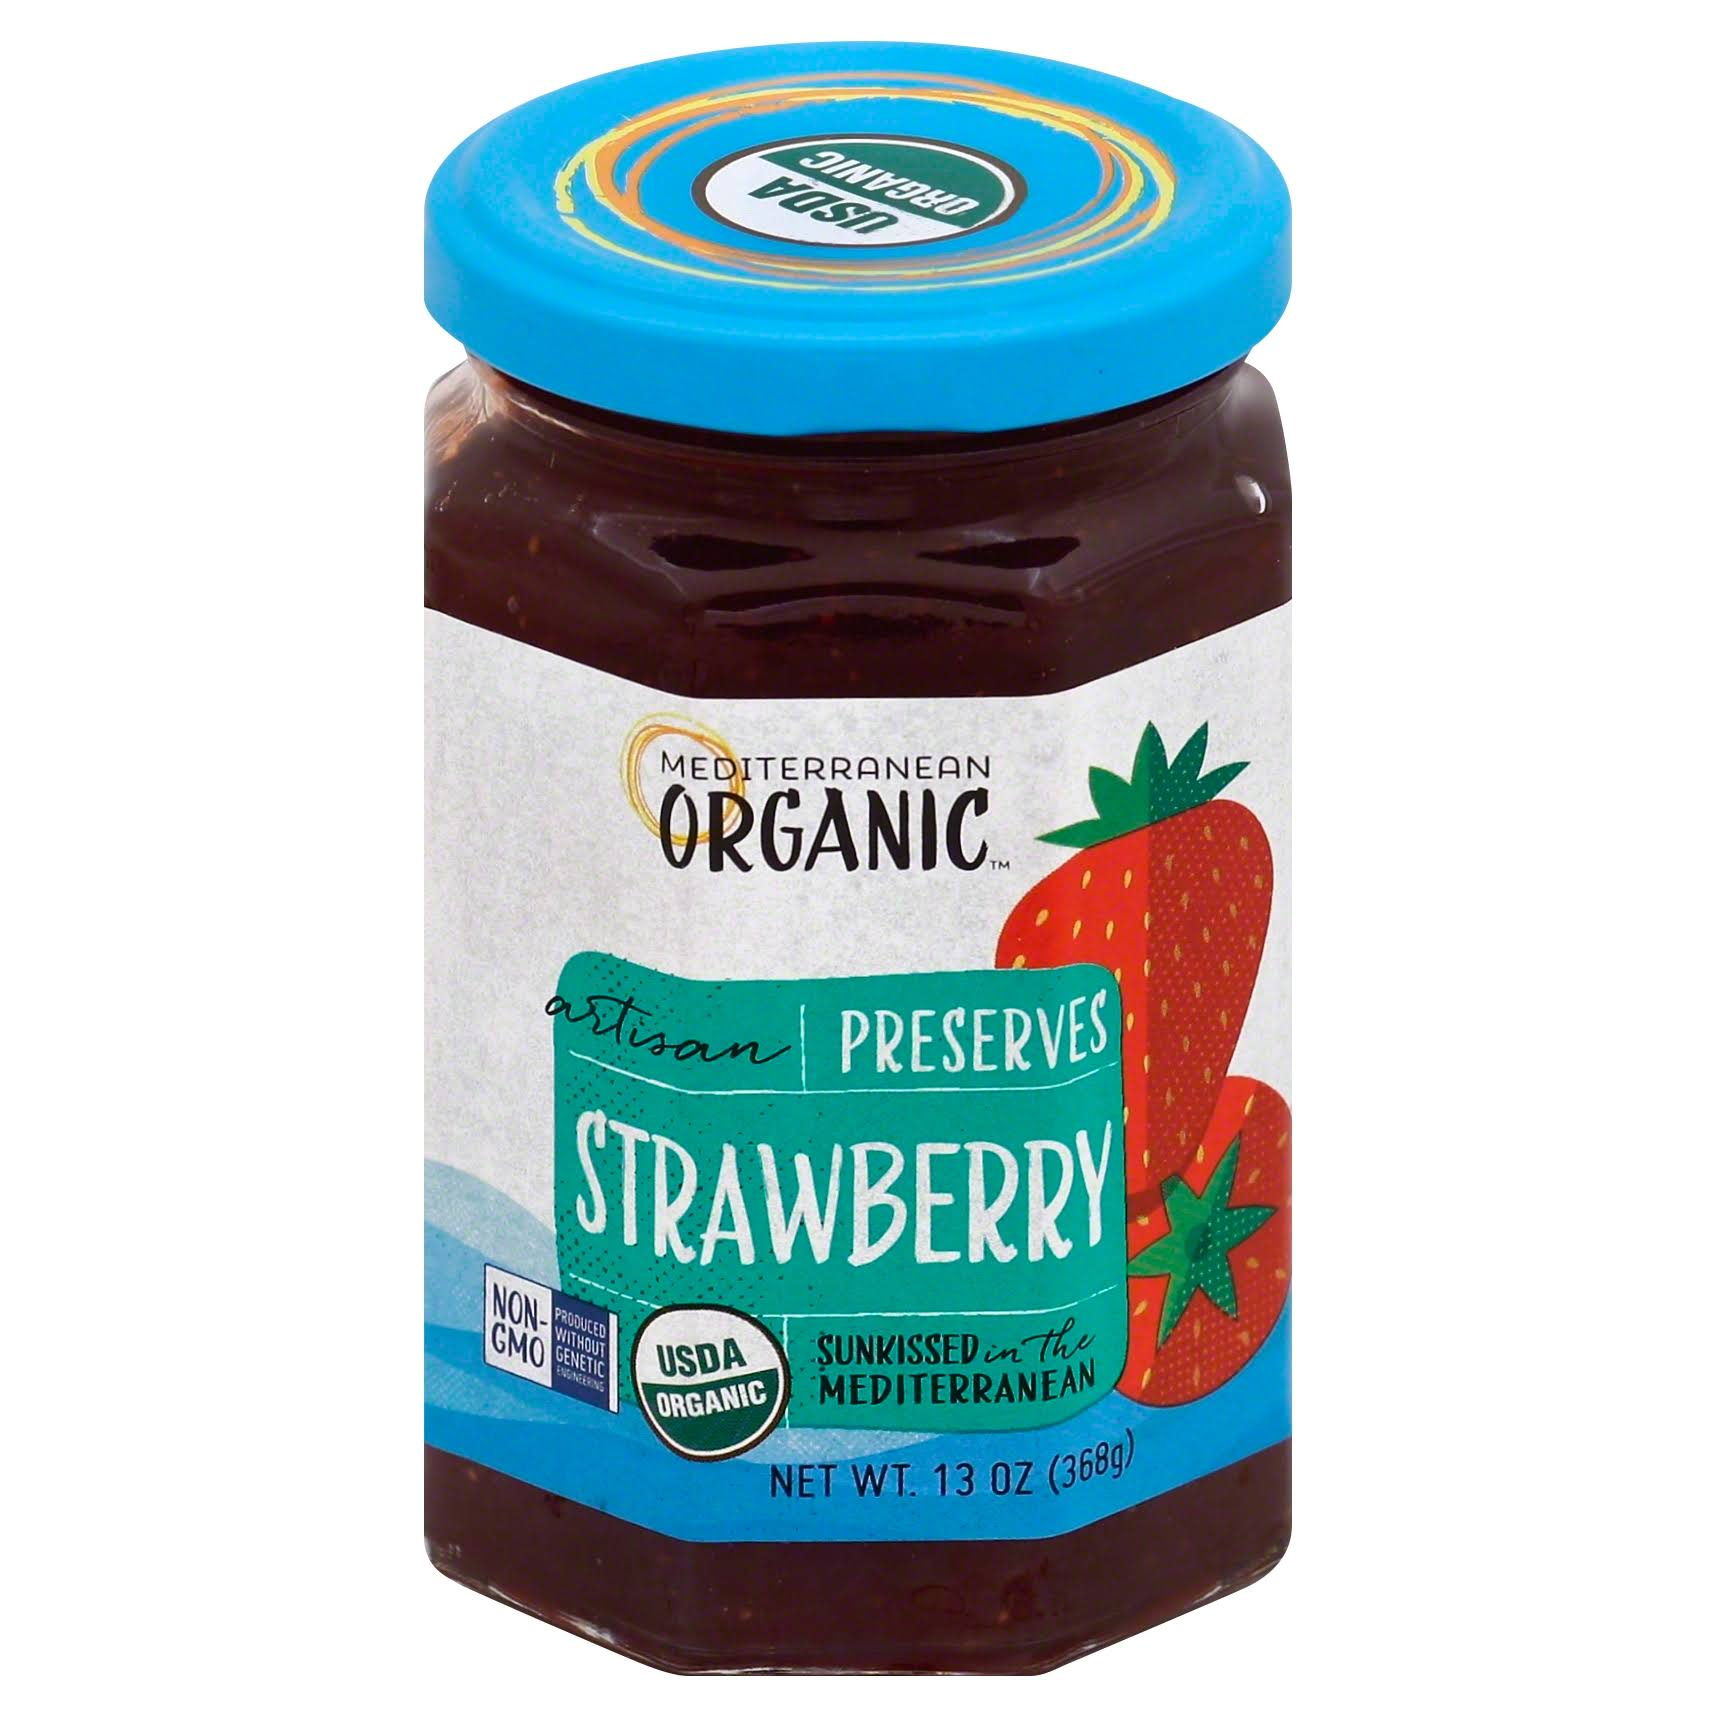 Mediterranean Organics Organic Strawberry Preserves